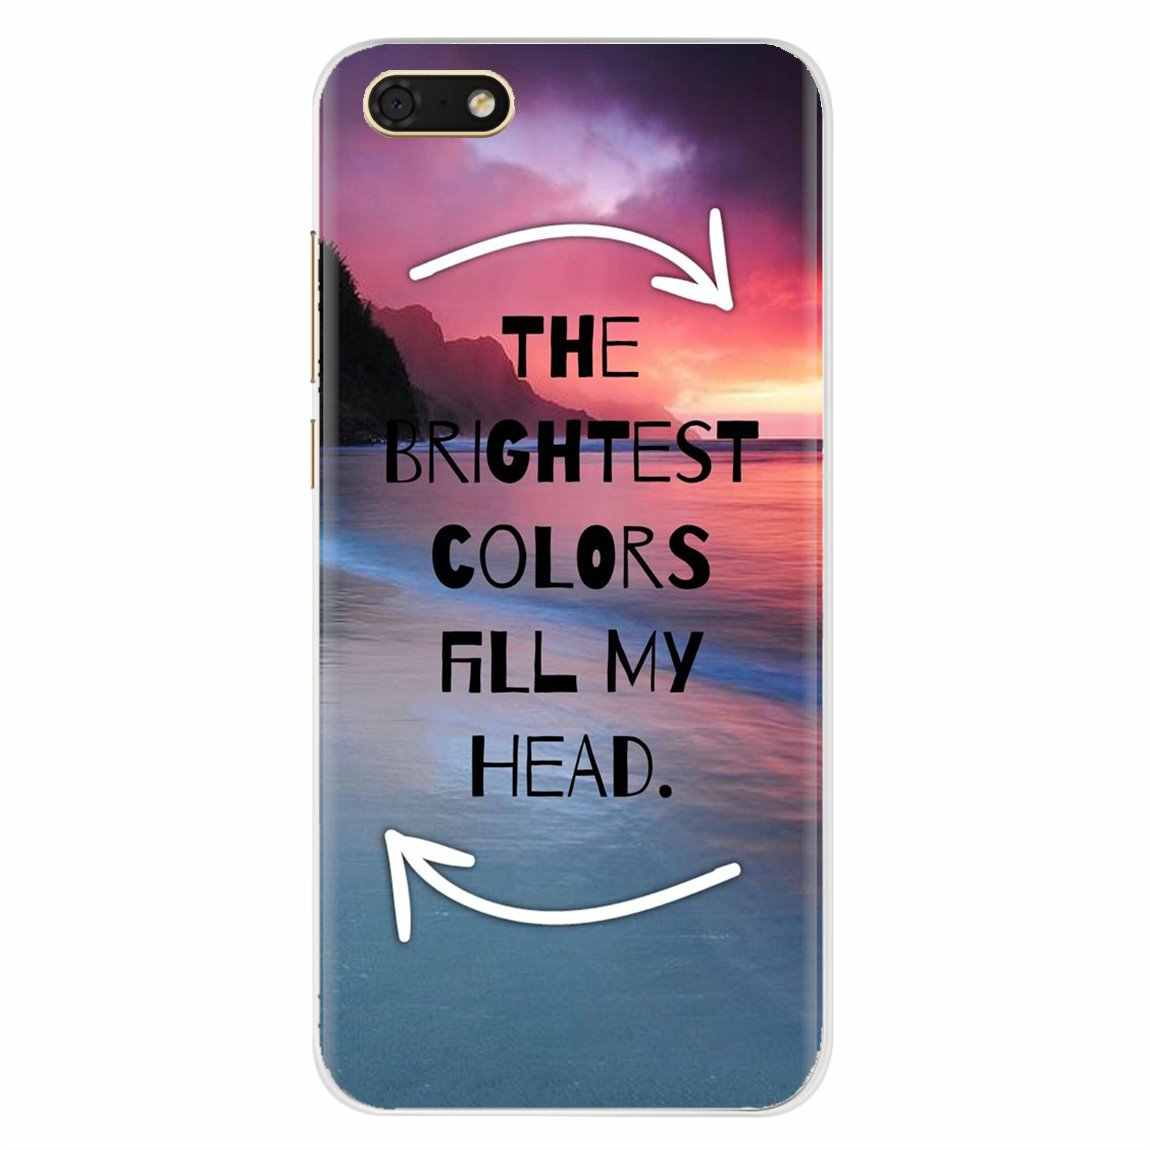 Movie Love In Paradise Wallpaper Silicone Case Housing For Samsung Galaxy J1 J2 J3 J4 J5 J6 J7 J8 Plus 2018 Prime 2015 2016 2017 Fitted Cases Aliexpress